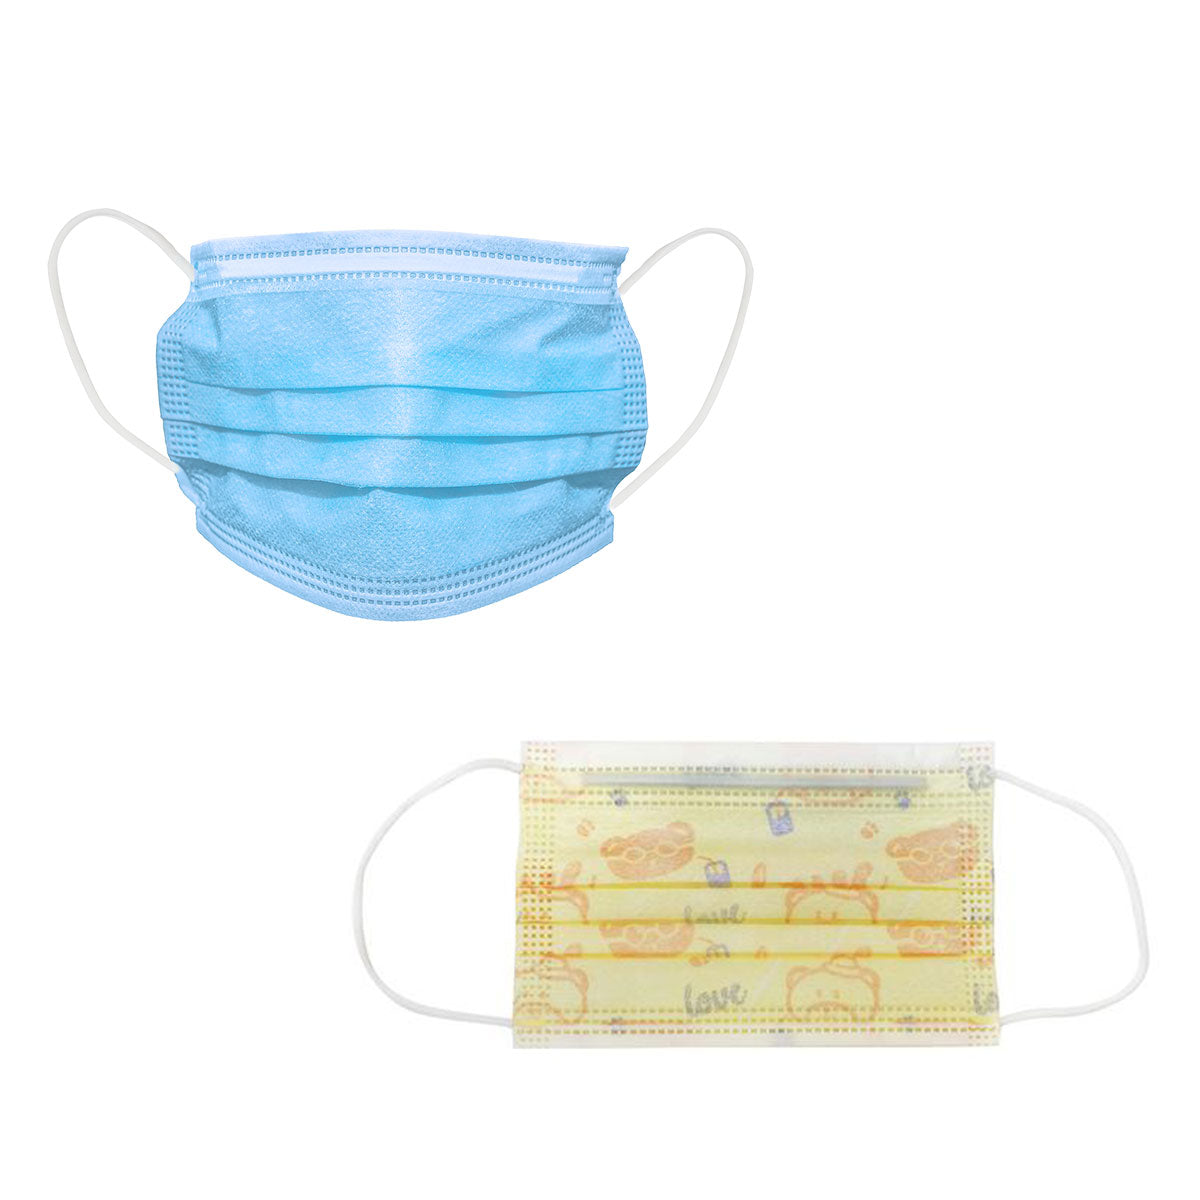 C2W Health coupon: 50 PACK Kids Disposable Mask + 50 PACK 3 Ply Disposable Masks